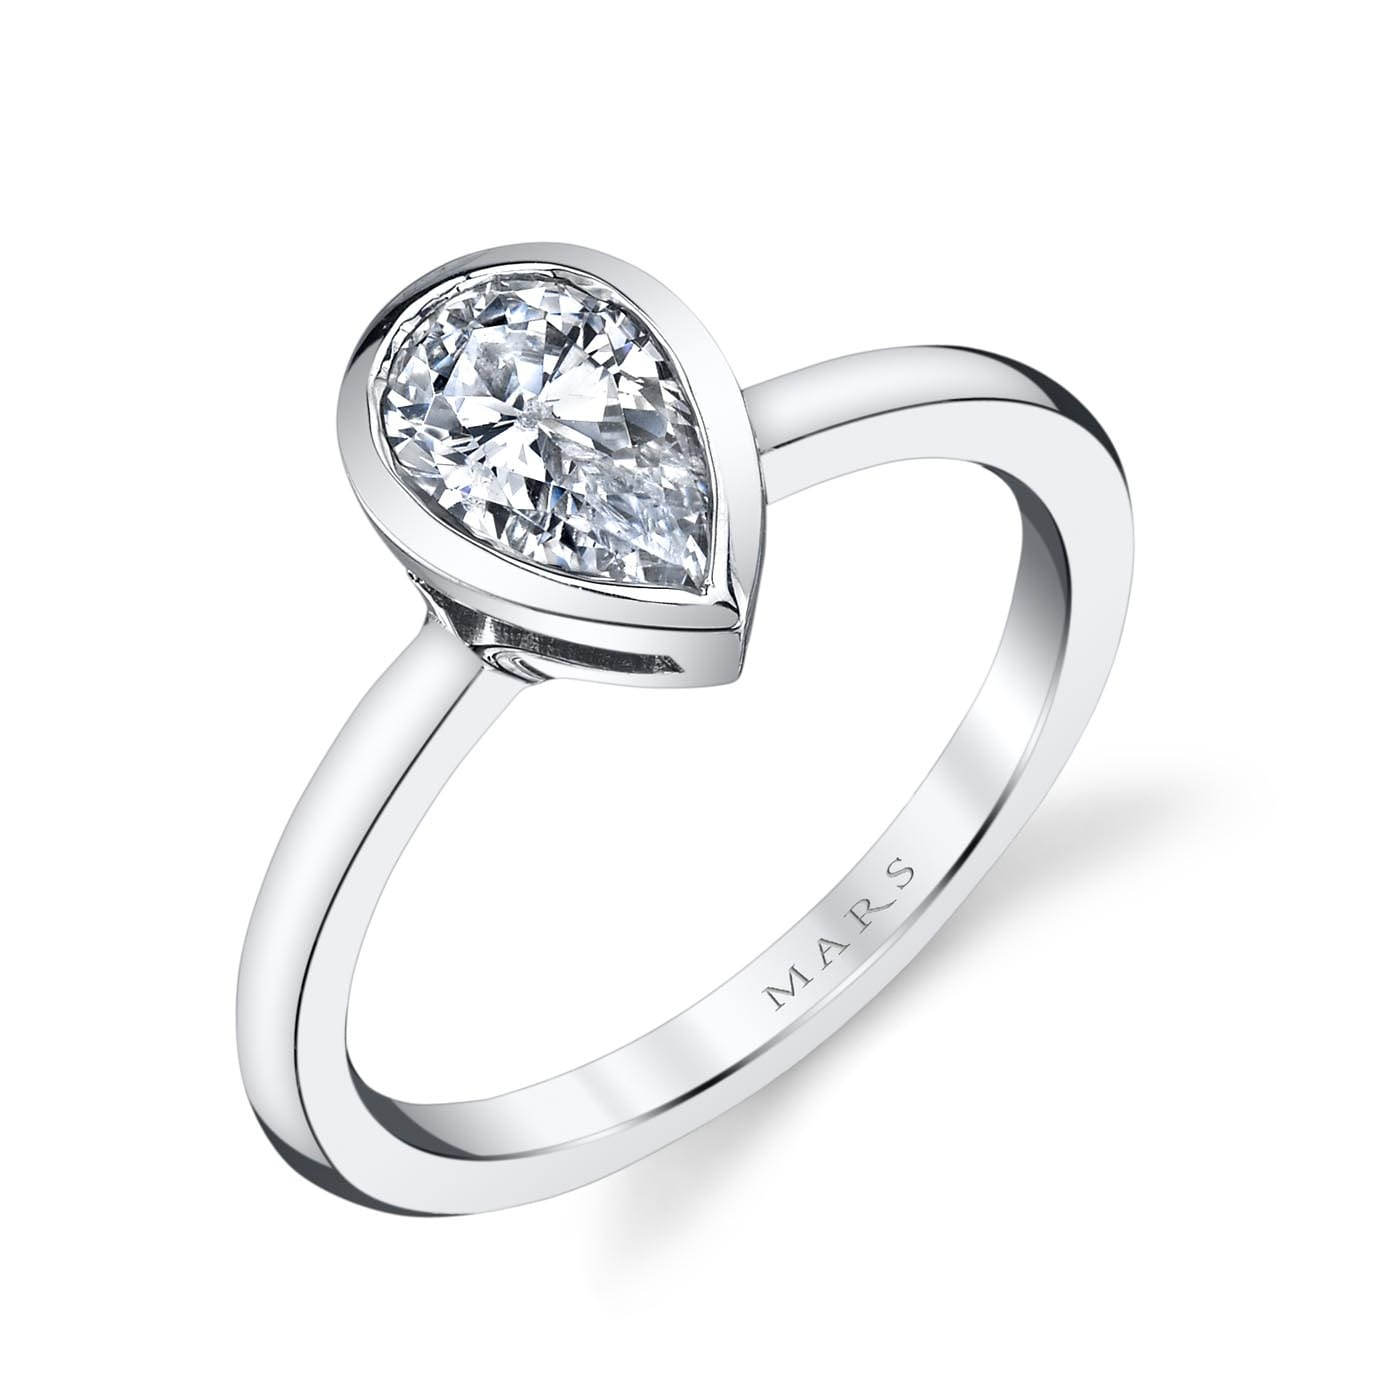 Solitaire Engagement RingStyle #: MARS 26704